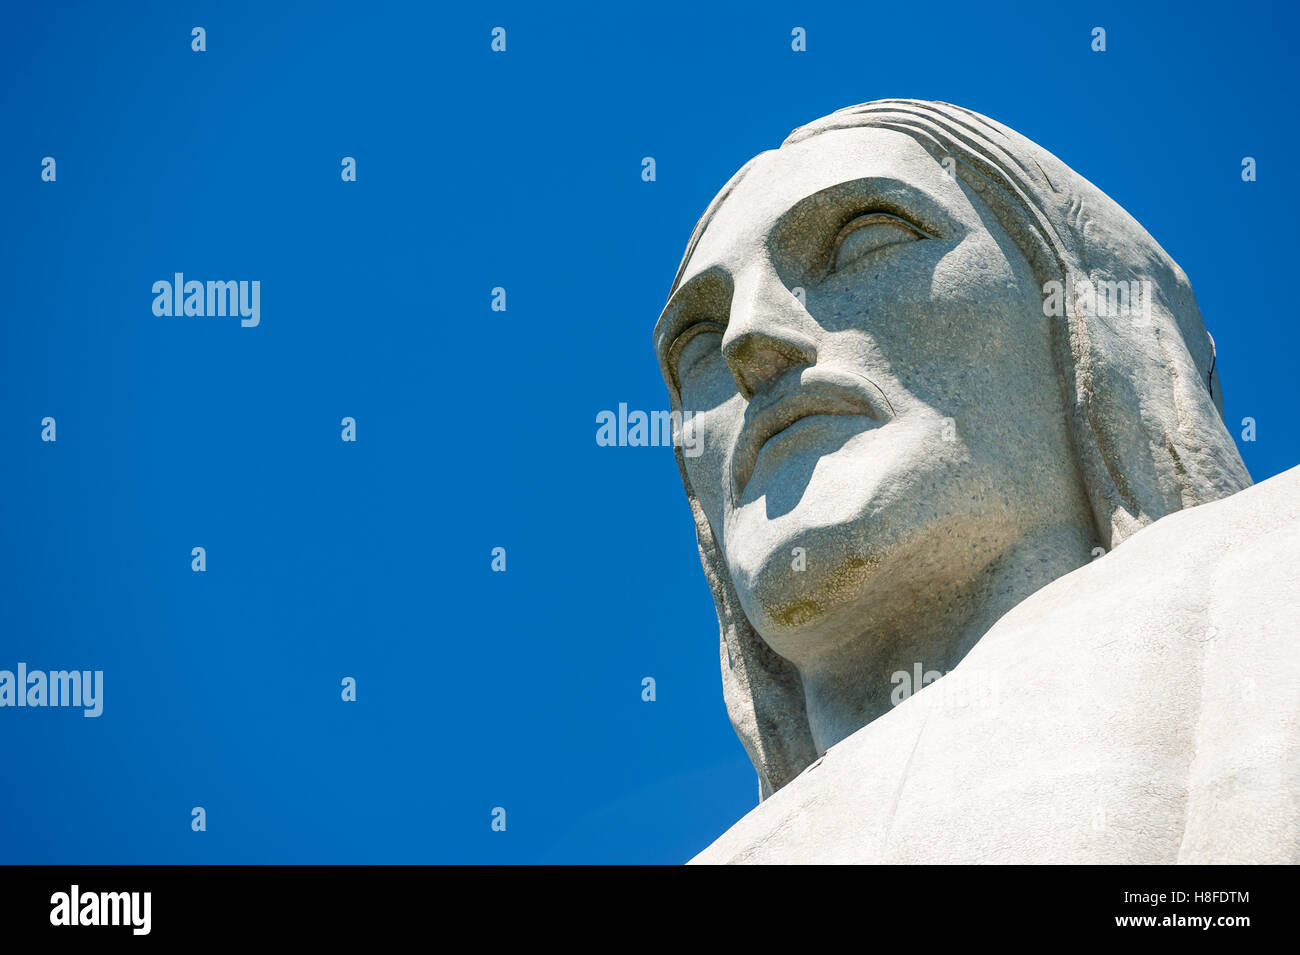 RIO DE JANEIRO - MARCH 21, 2016: The face of the statue of Christ the Redeemer, one of the city's most recognizable - Stock Image